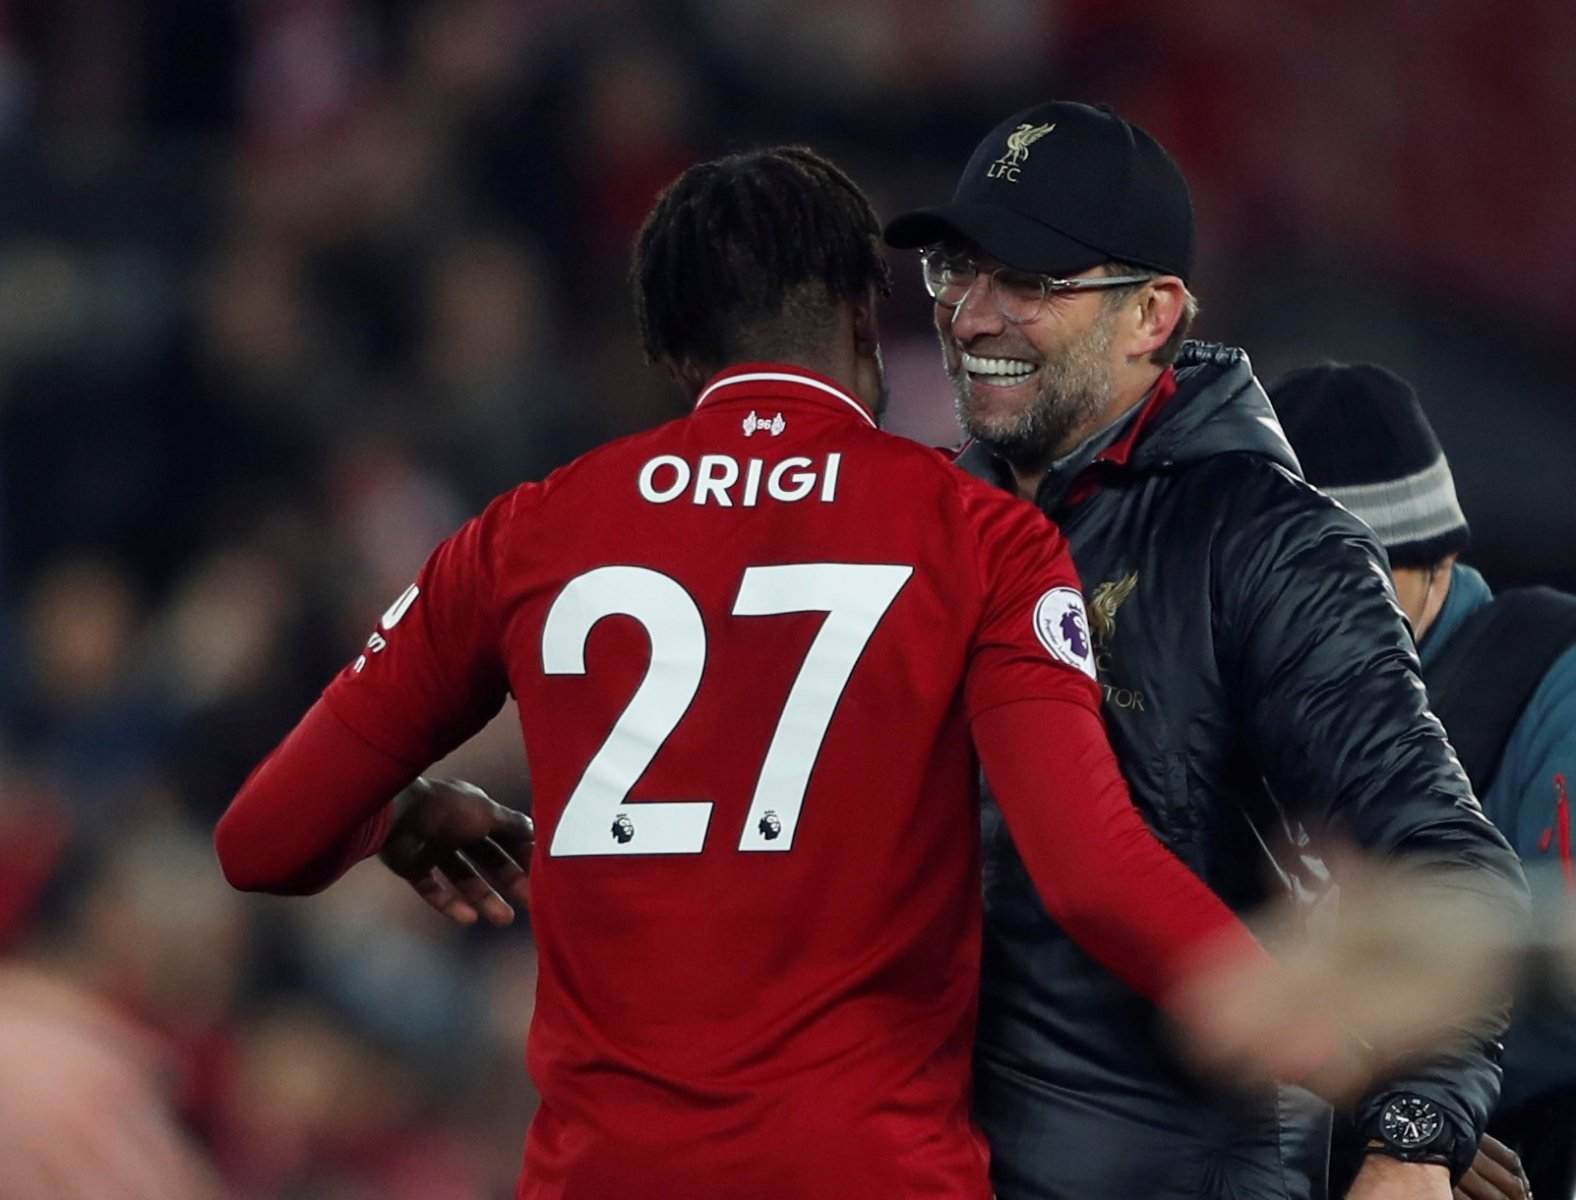 Forget Solanke: Palace would be better served targeting Liverpool teammate Divock Origi